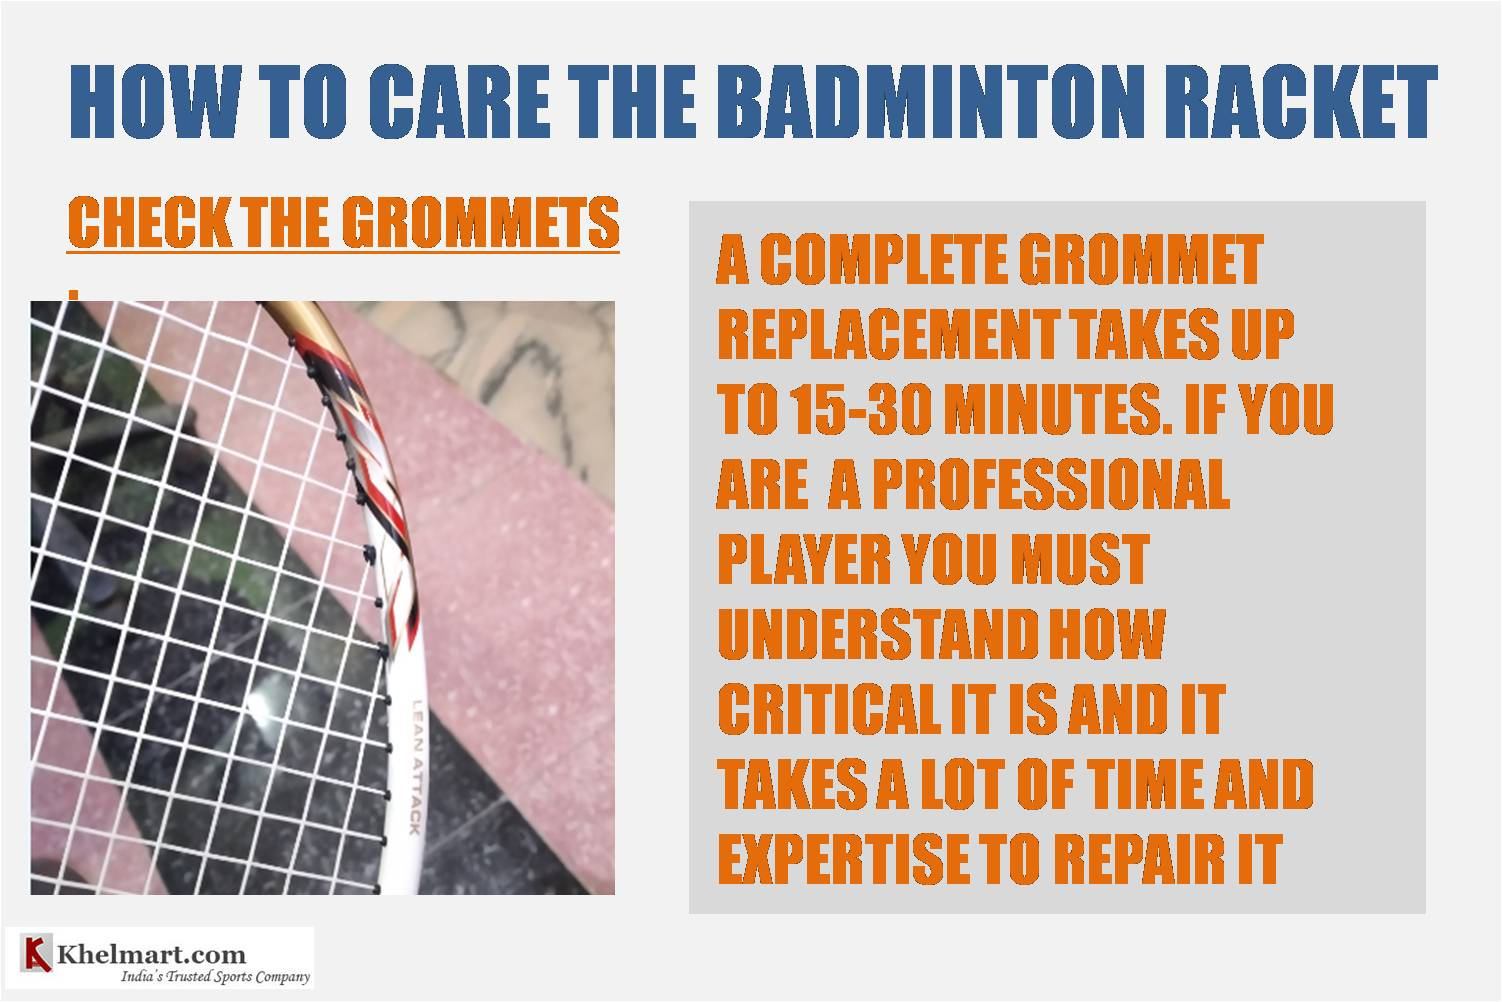 How_to_take_care_of_badminton_racket_Grommets_Care_khelmart_Guide.jpg